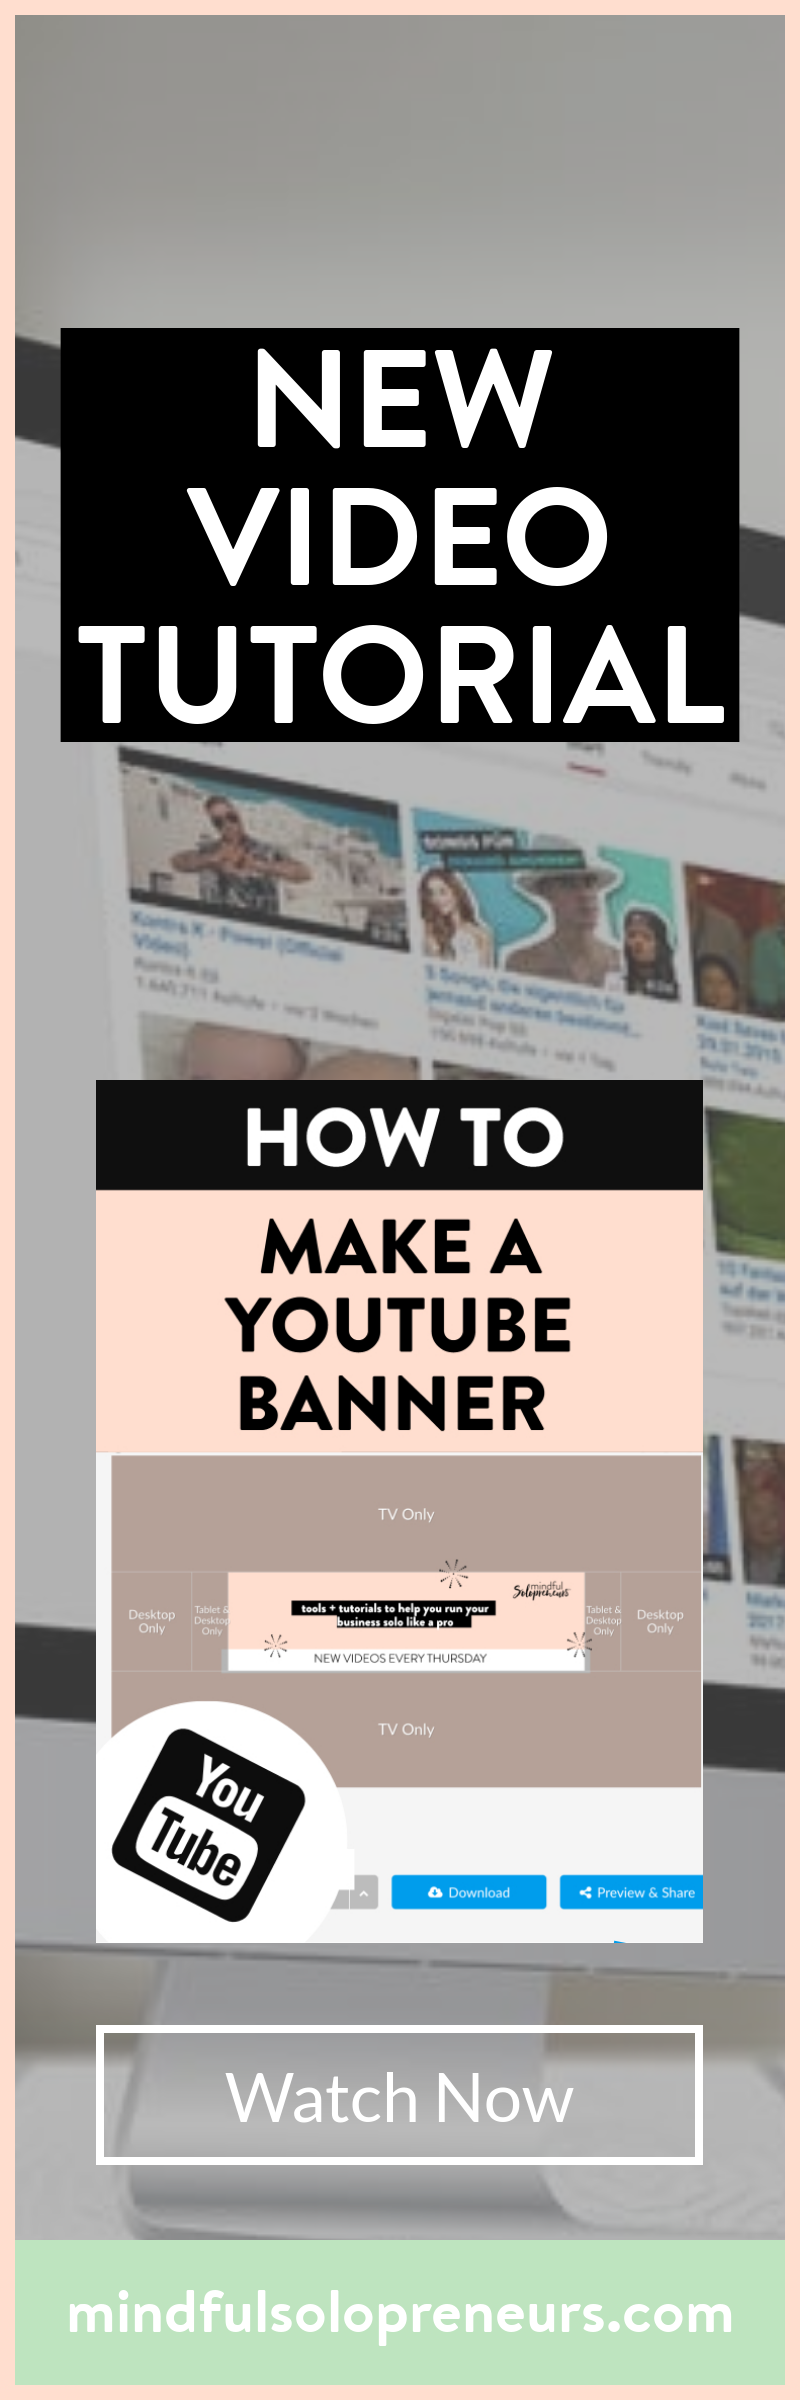 Today I will be showing you how to make a youtube banner or